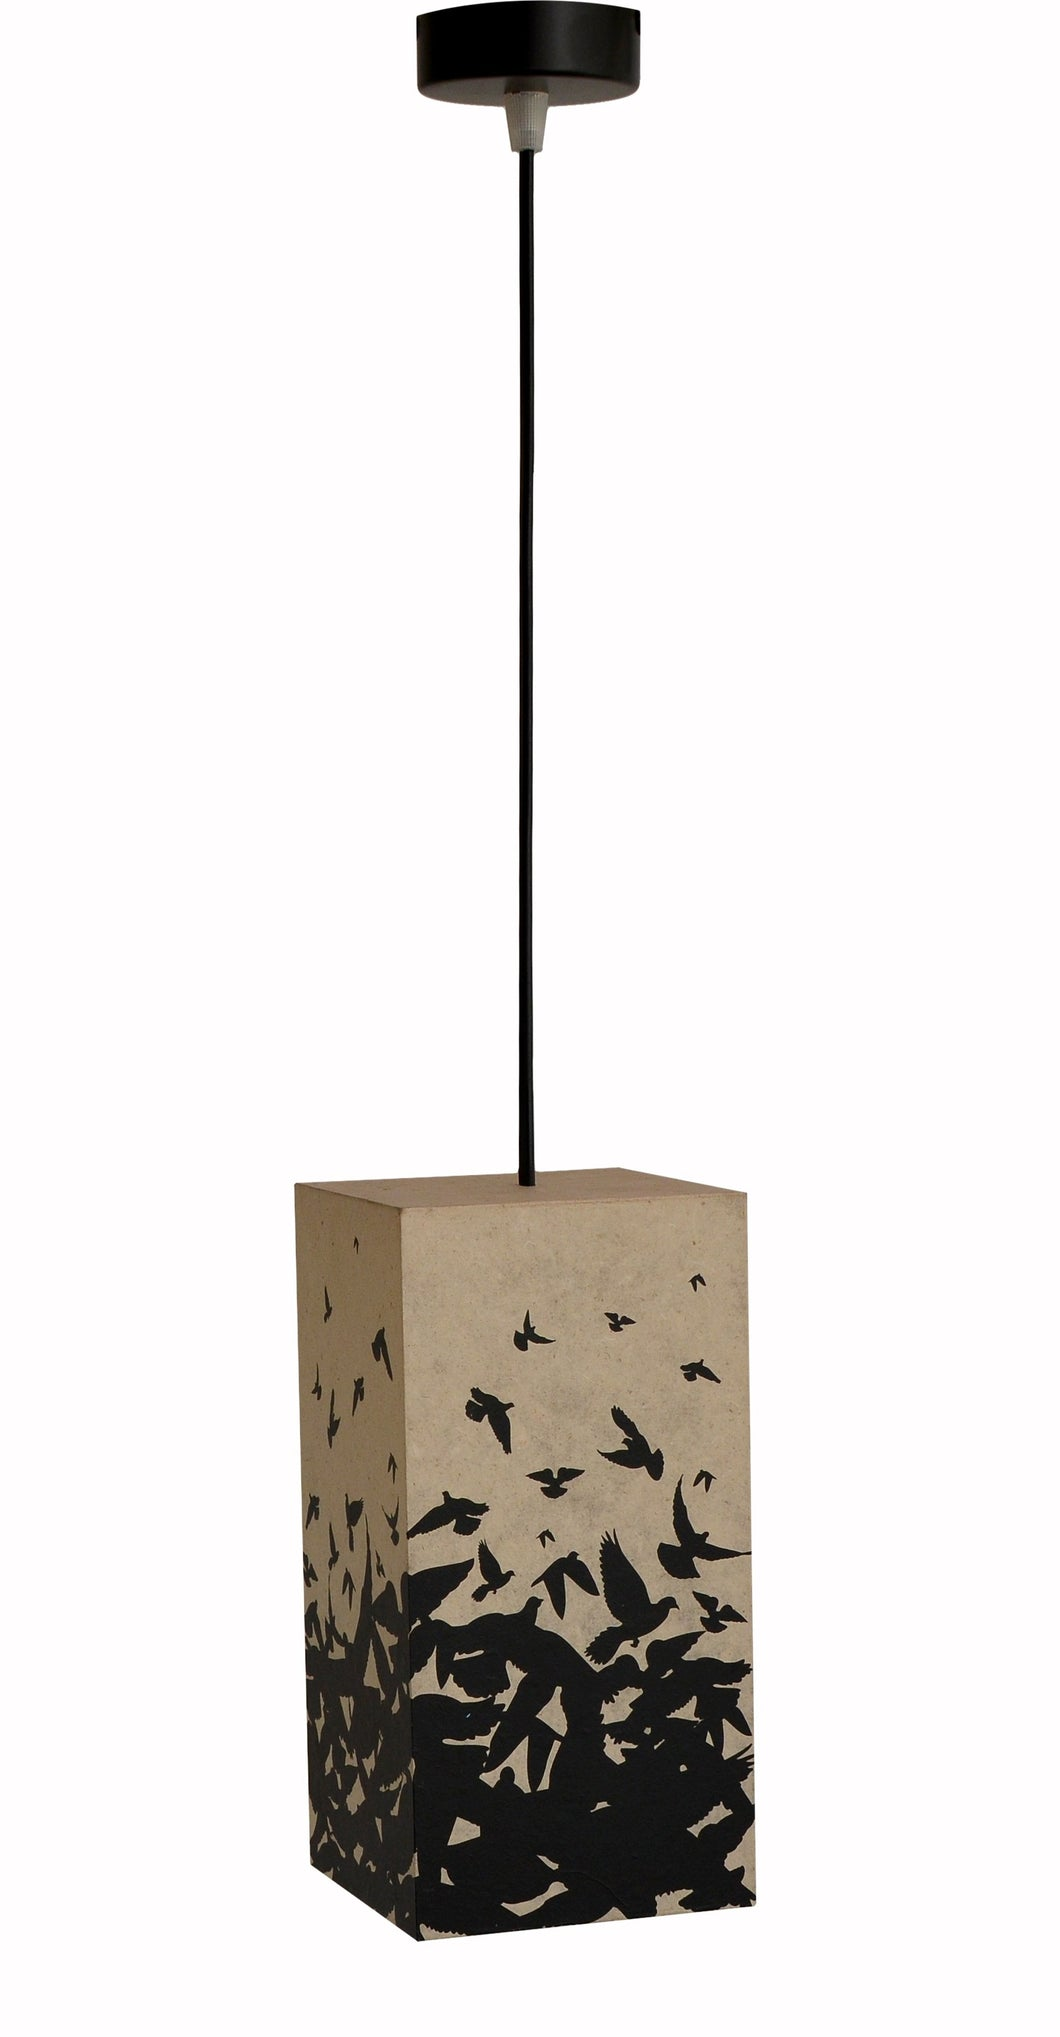 Taking Flight Suspension LED Pendant Lamp